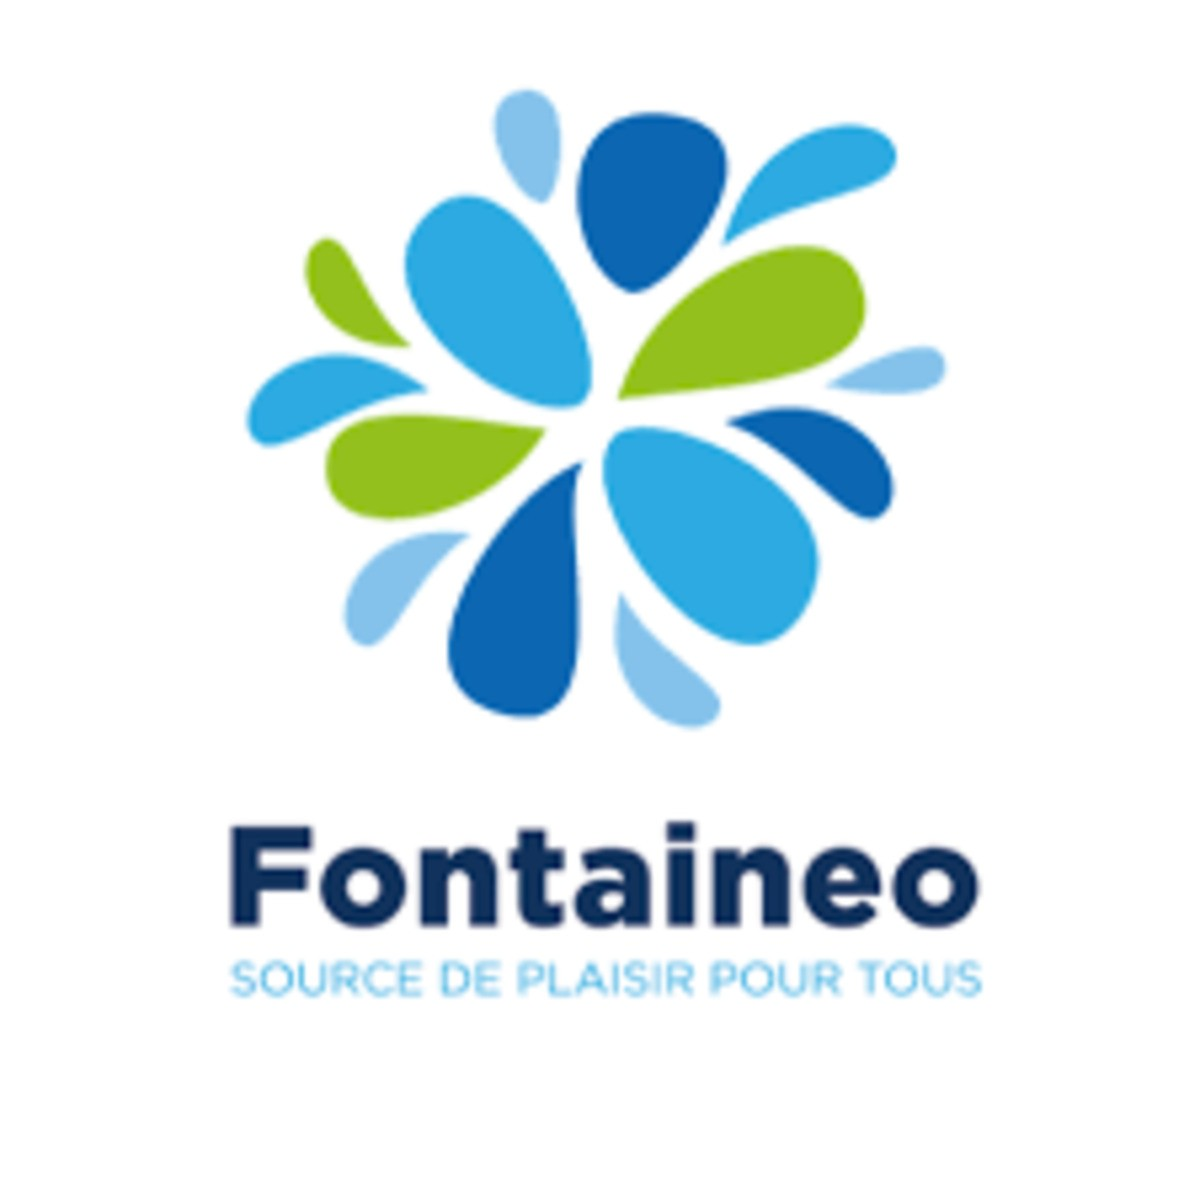 Fontaineo